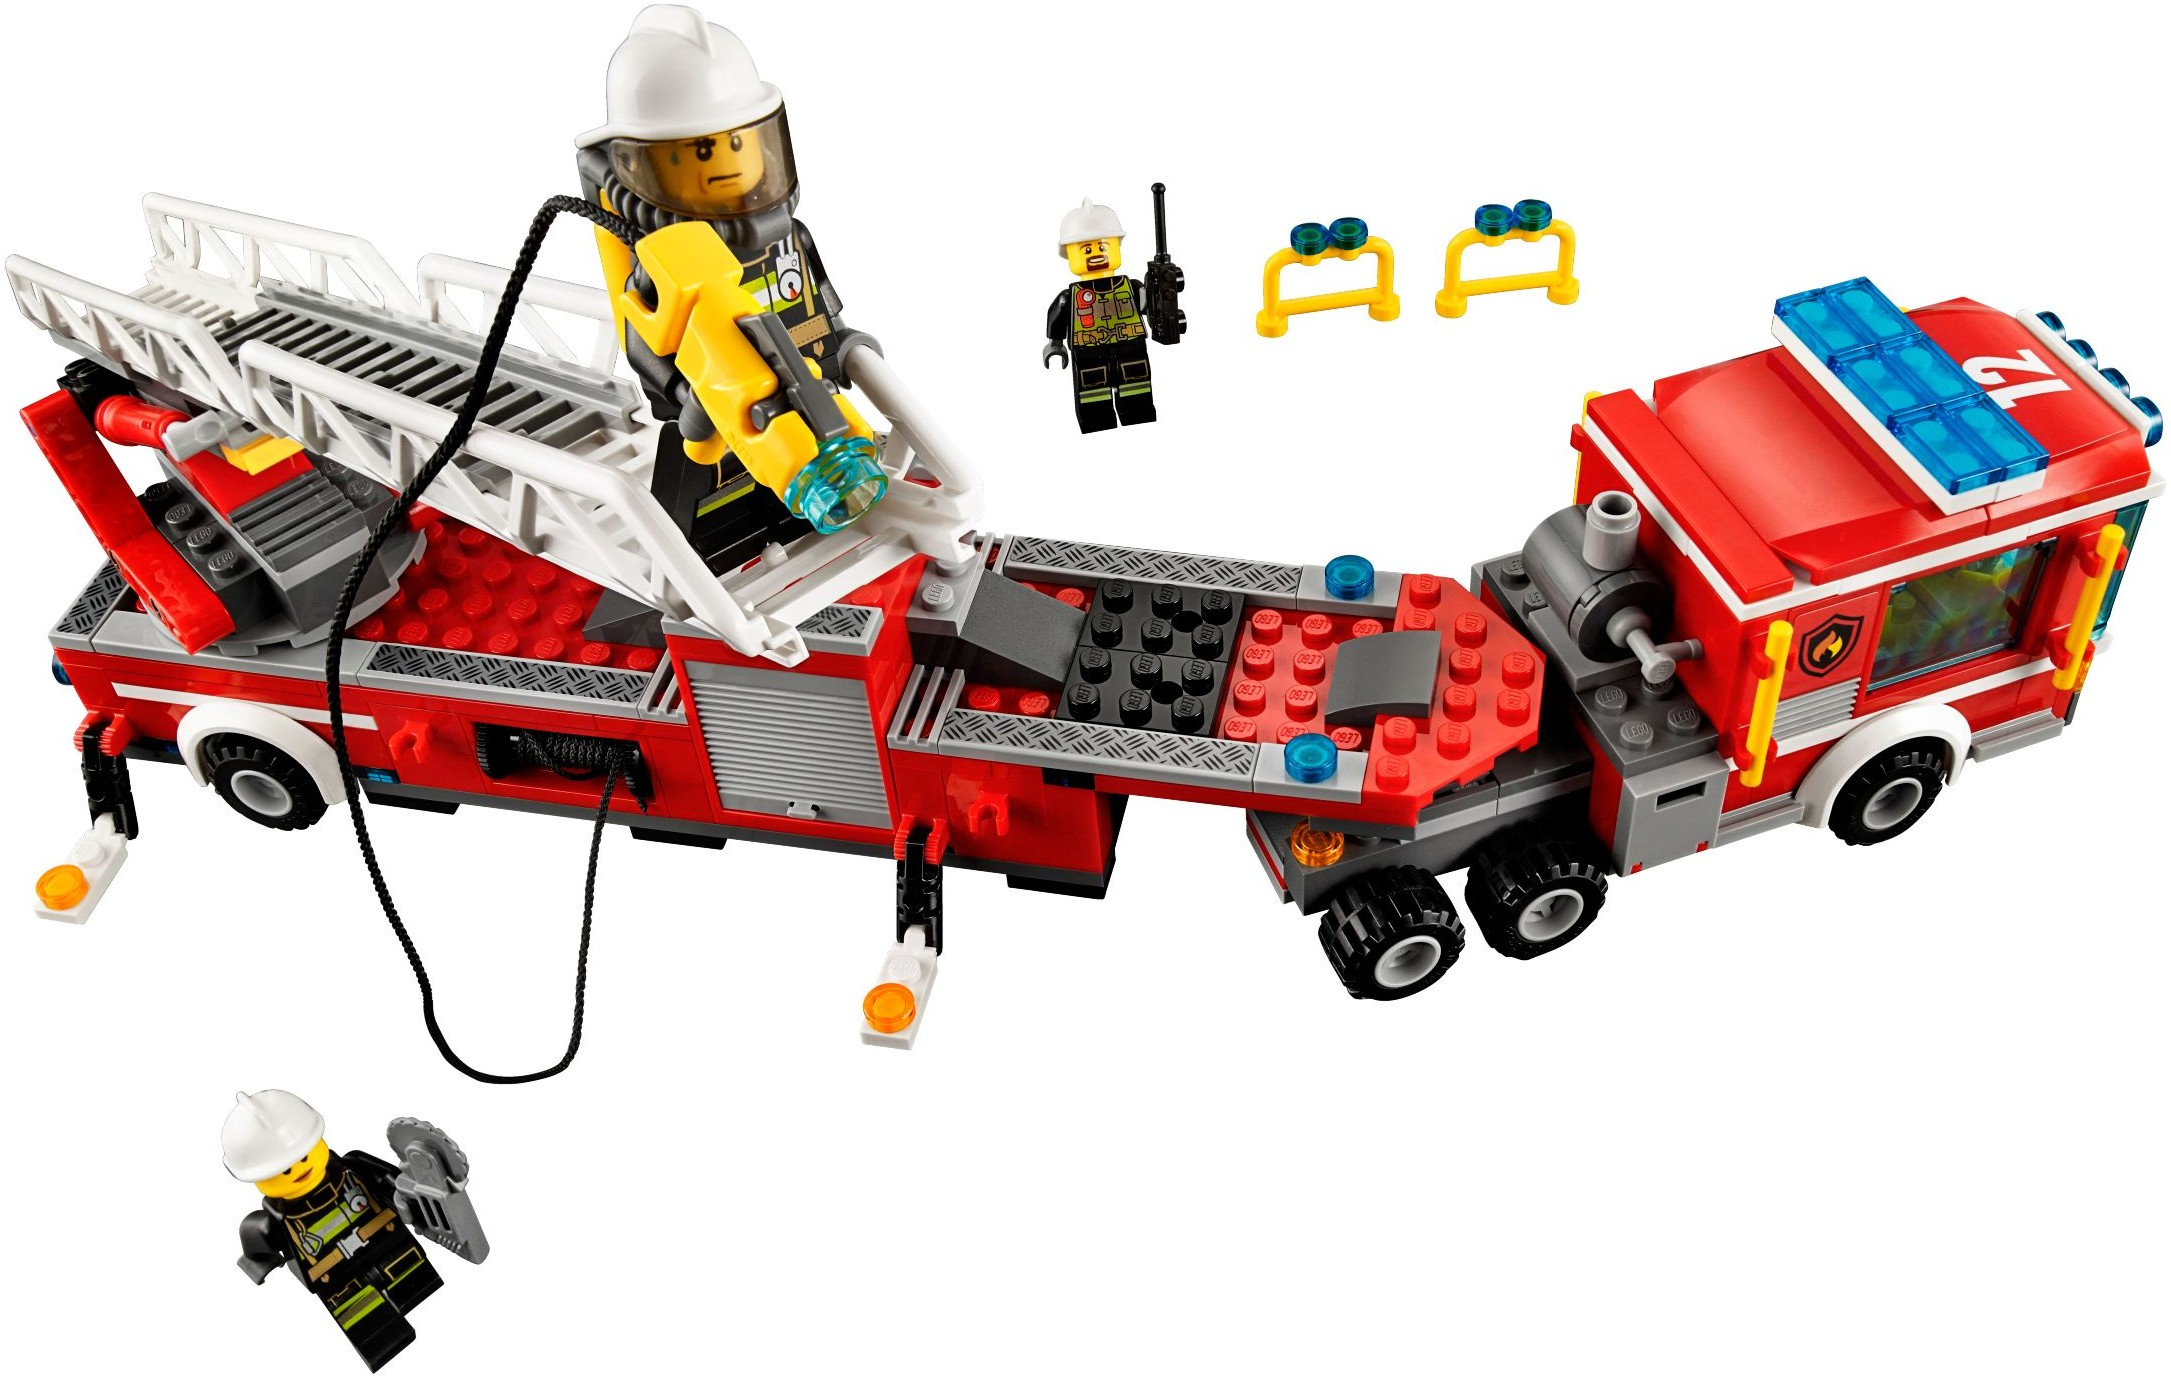 Lego Firefighter Building Set